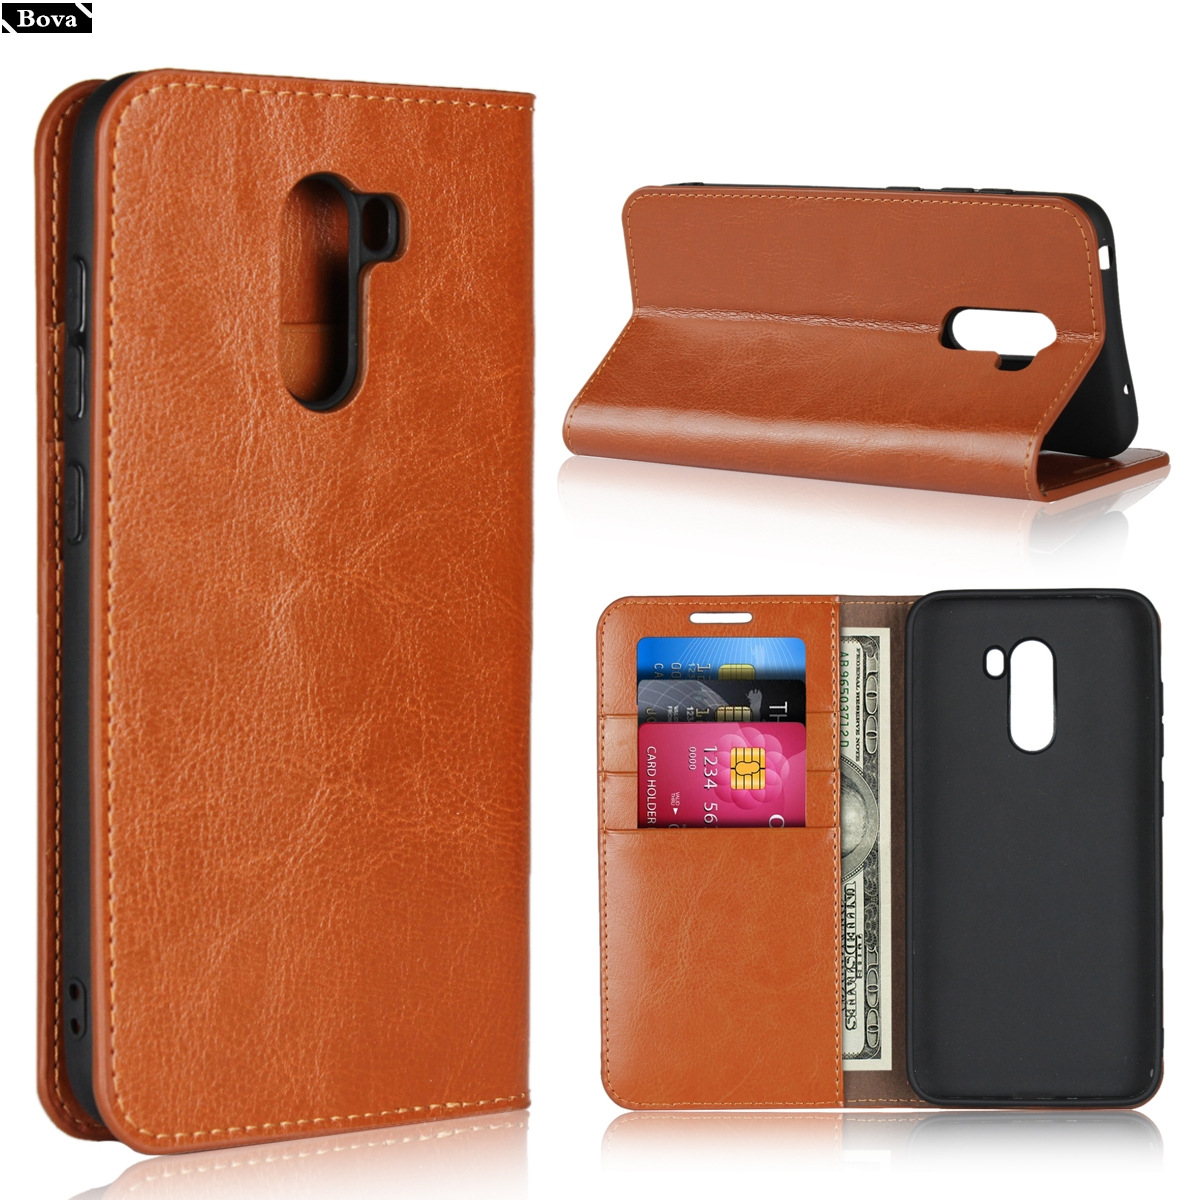 "Deluxe Wallet Case for Xiaomi Pocophone F1 premium leather Case Flip Cover Case for Xiaomi Poco F1 (6.18"") retro phone bags"